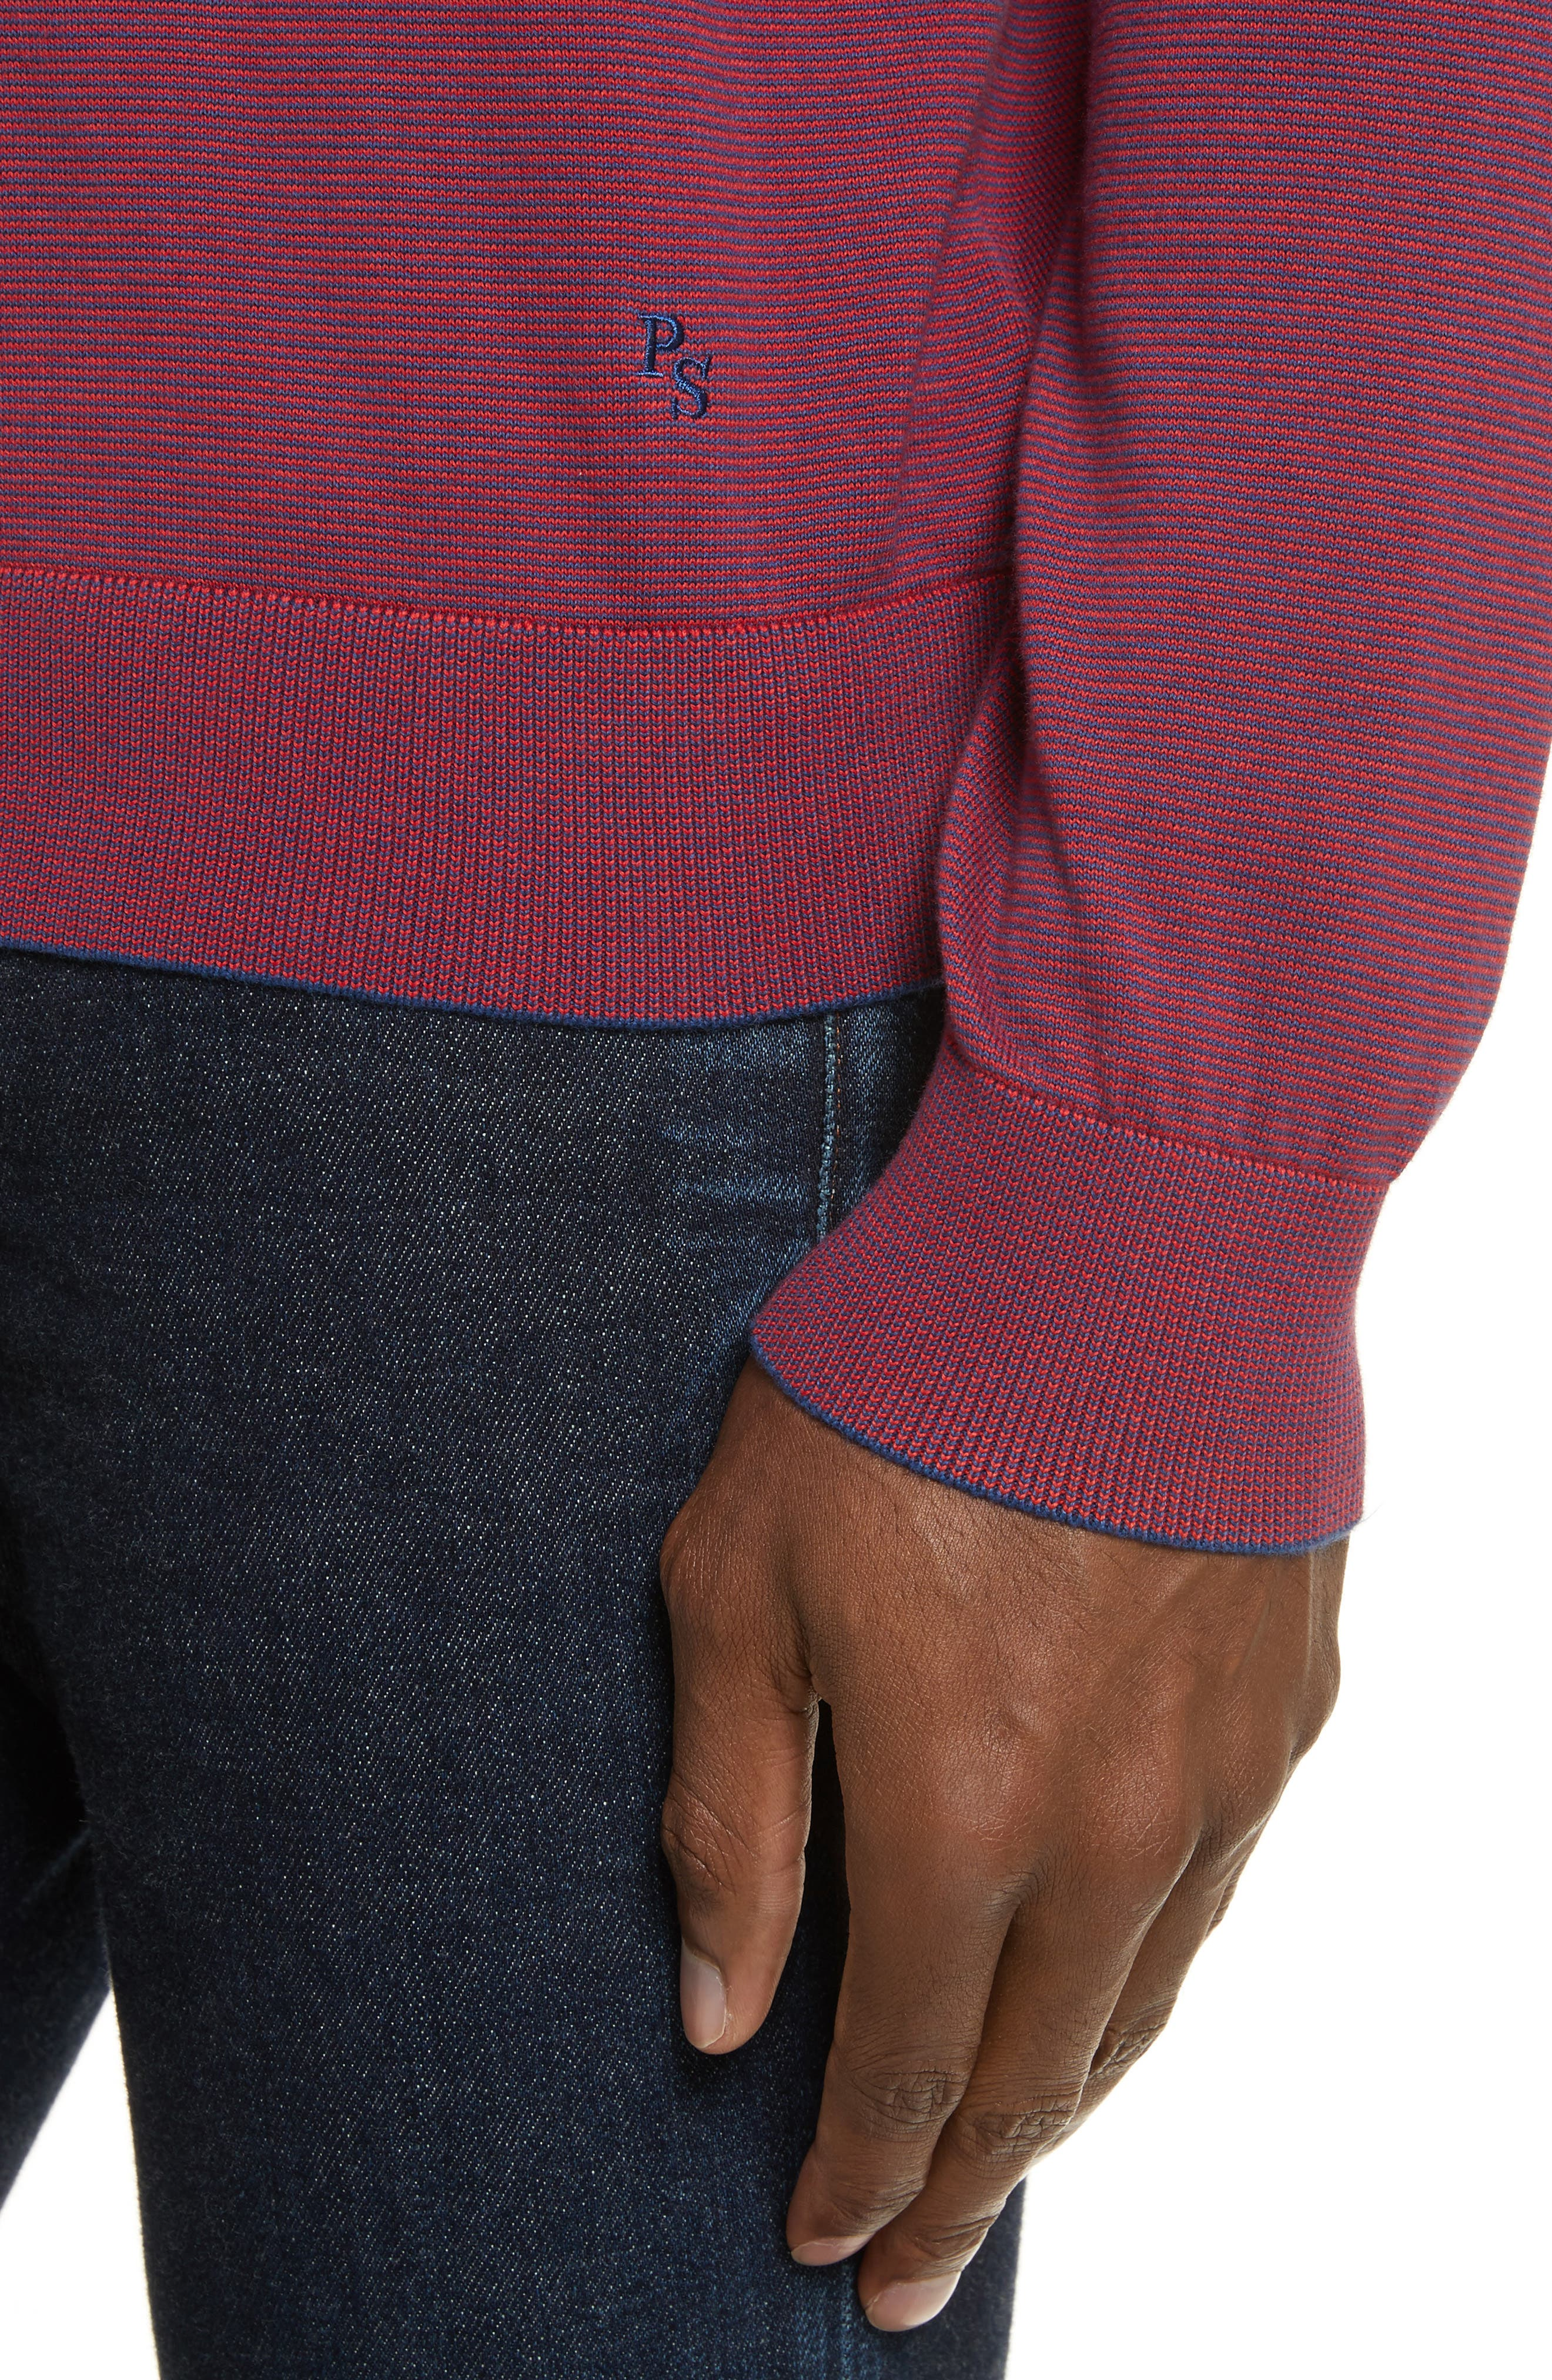 Ministripe Crewneck Sweater,                             Alternate thumbnail 4, color,                             Red